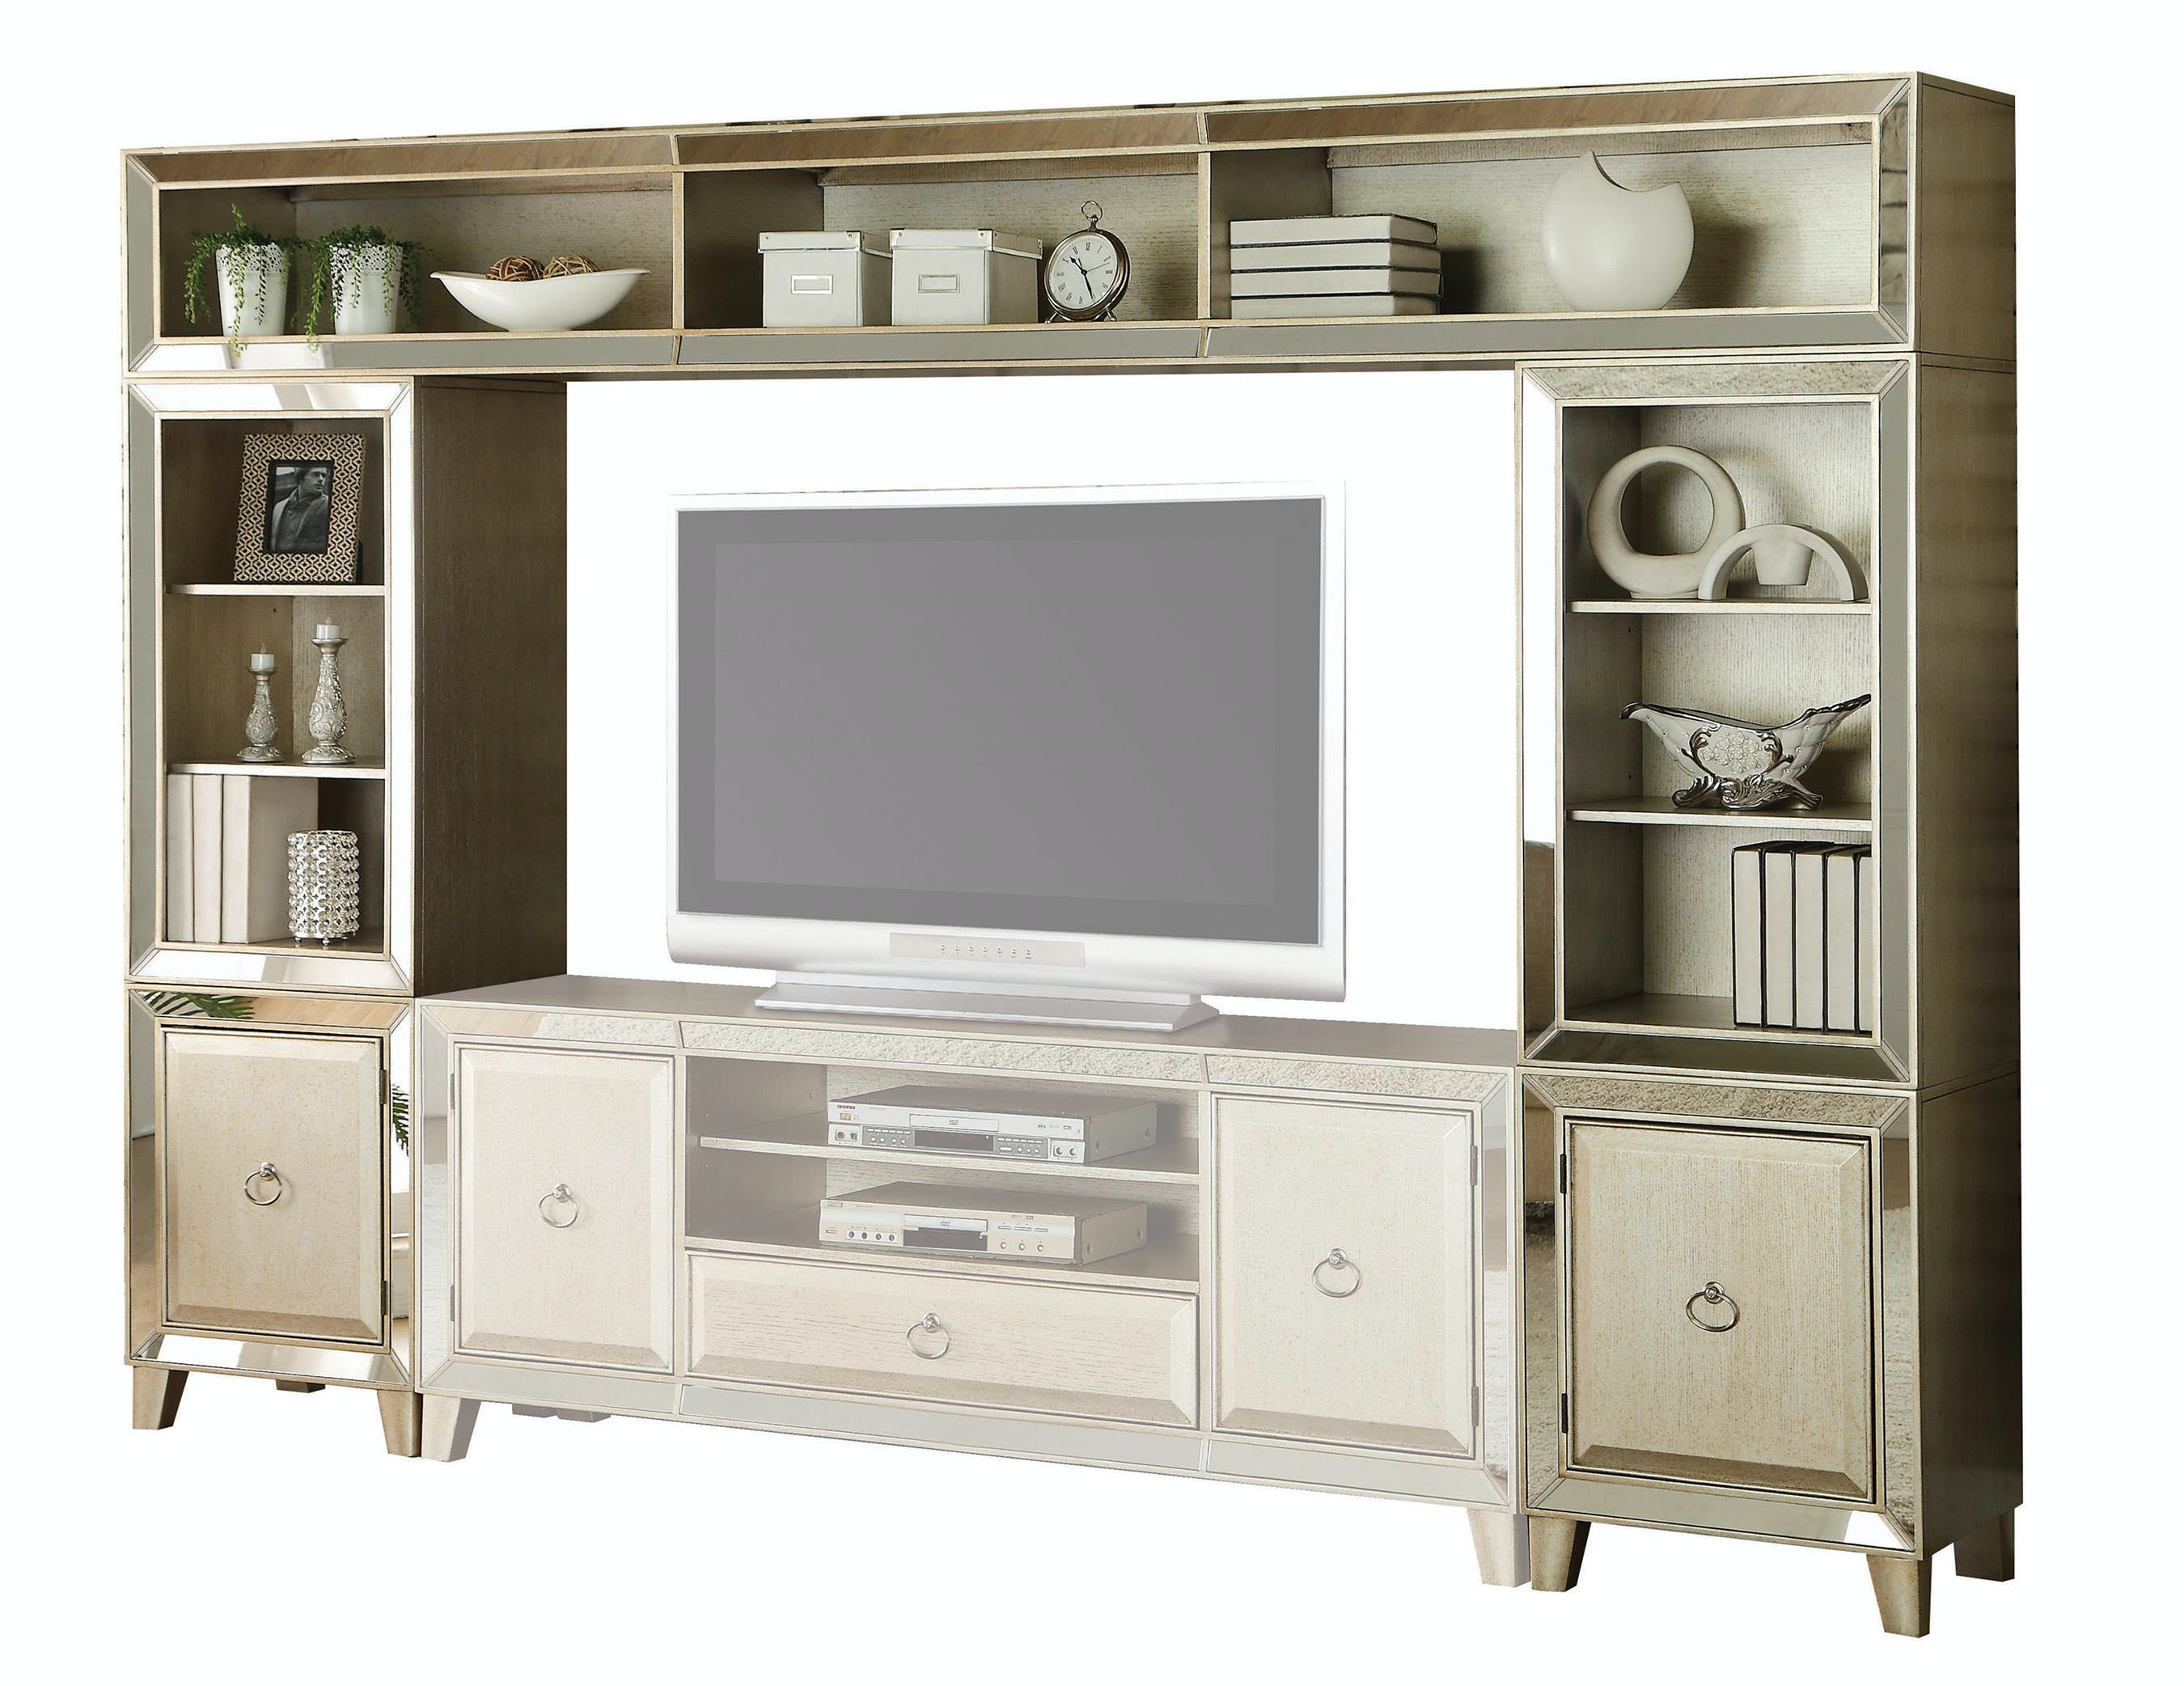 Acme Furniture Home Entertainment Voeville Entertainment Center 91200 At Gallery  Furniture